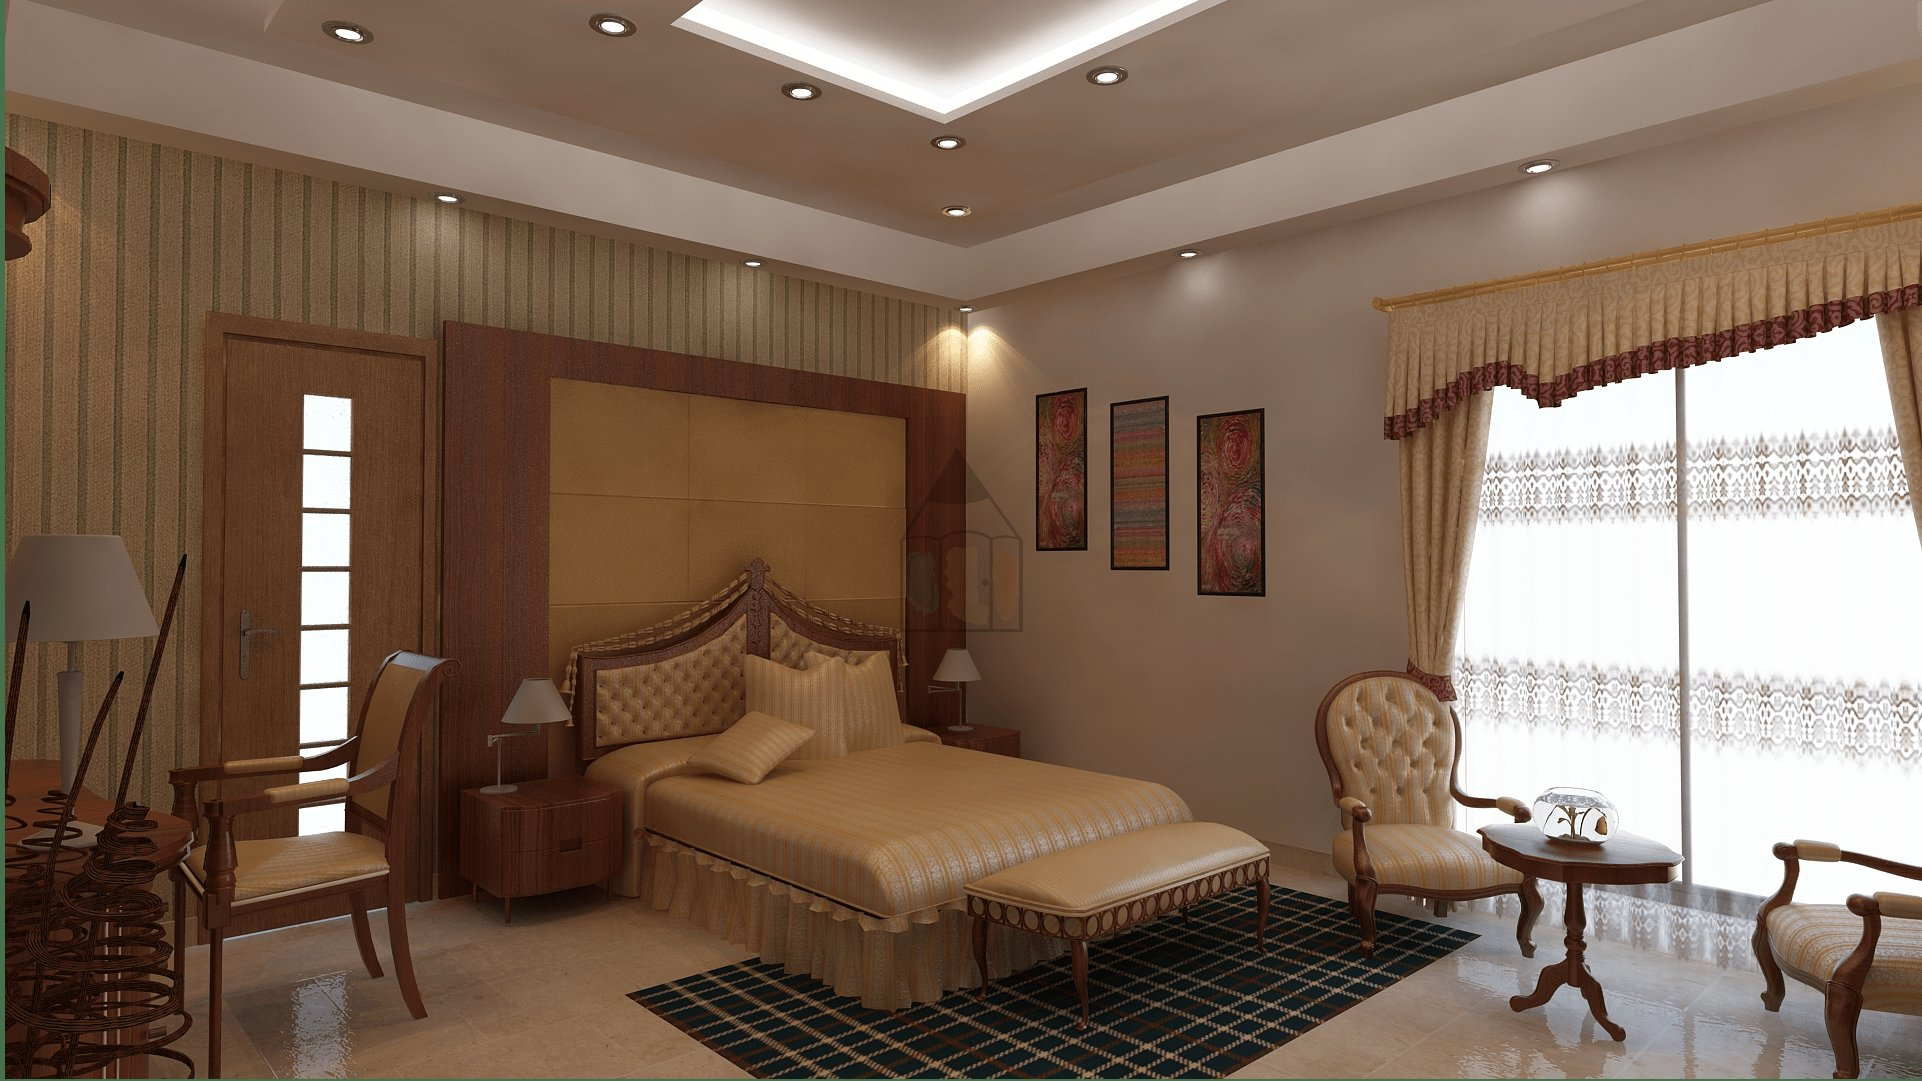 Best Pakistani Bedroom Design In Pakistan Clients Prefer With Pictures